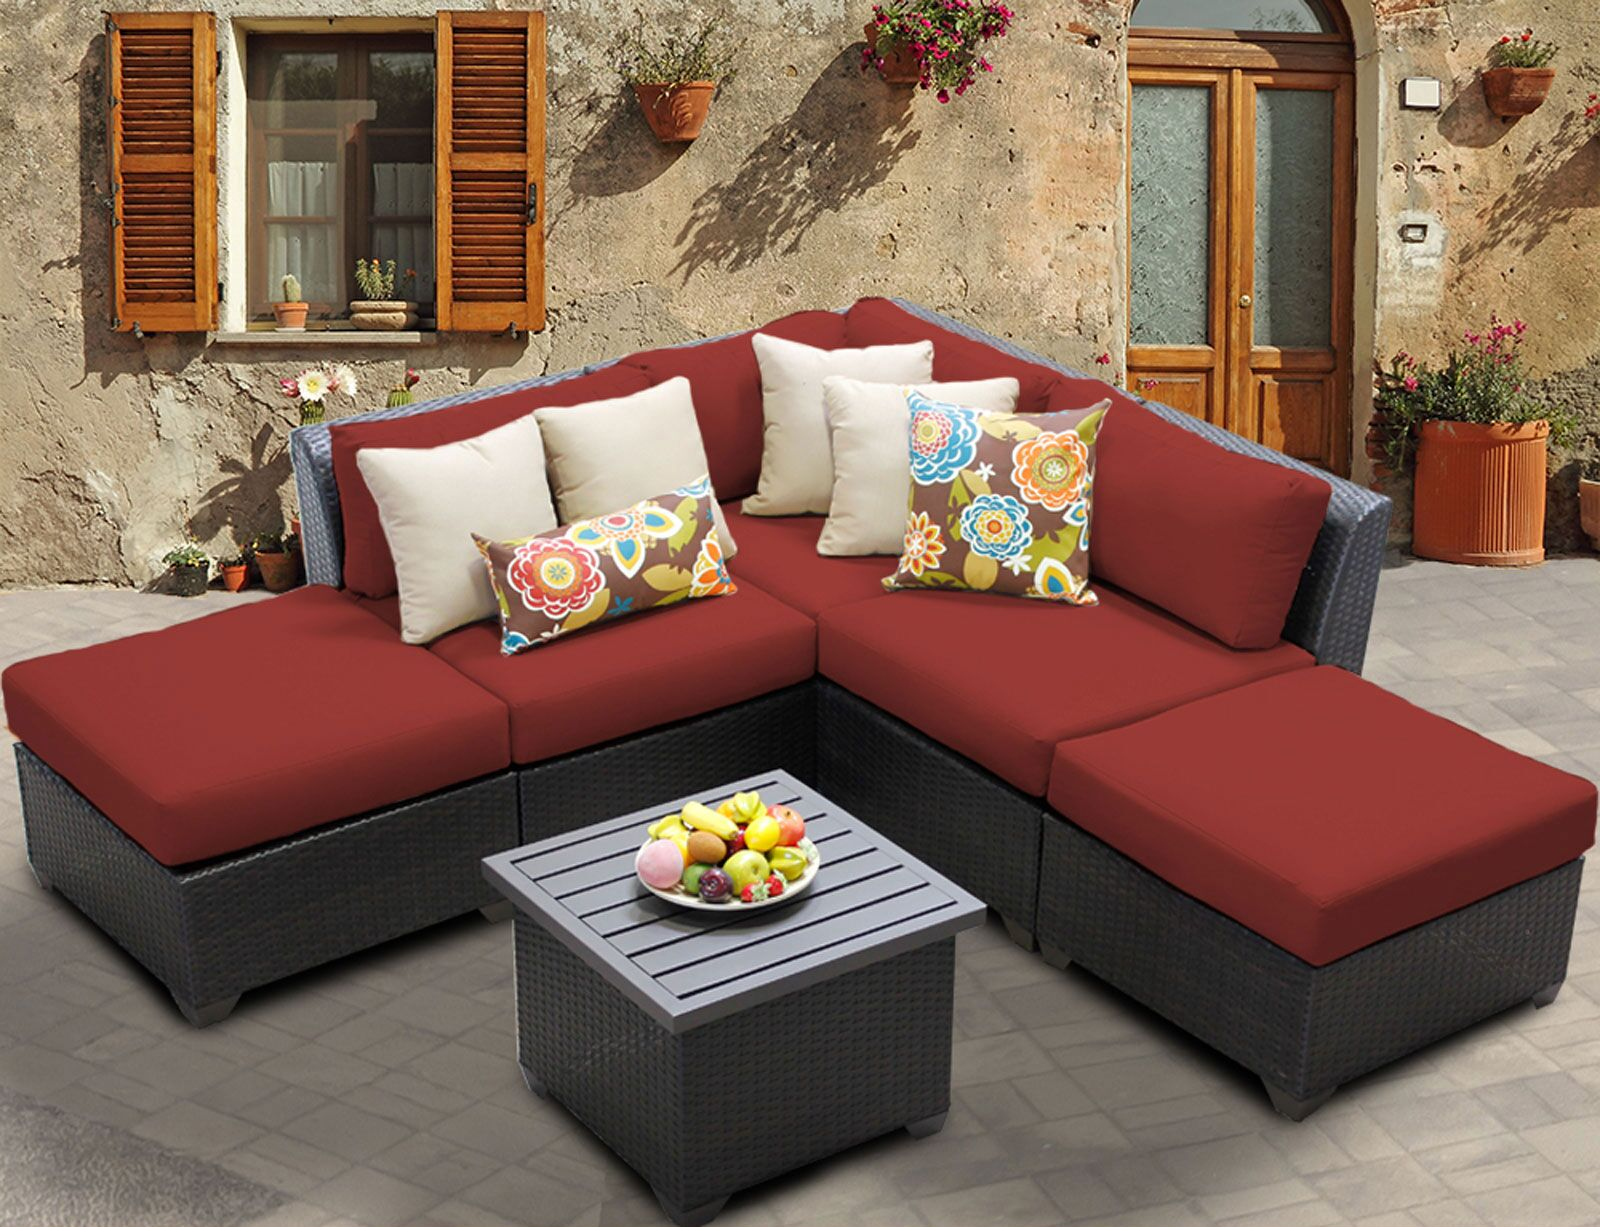 Barbados 6 Piece Rattan Sectional Set with Cushions Color: Terracotta